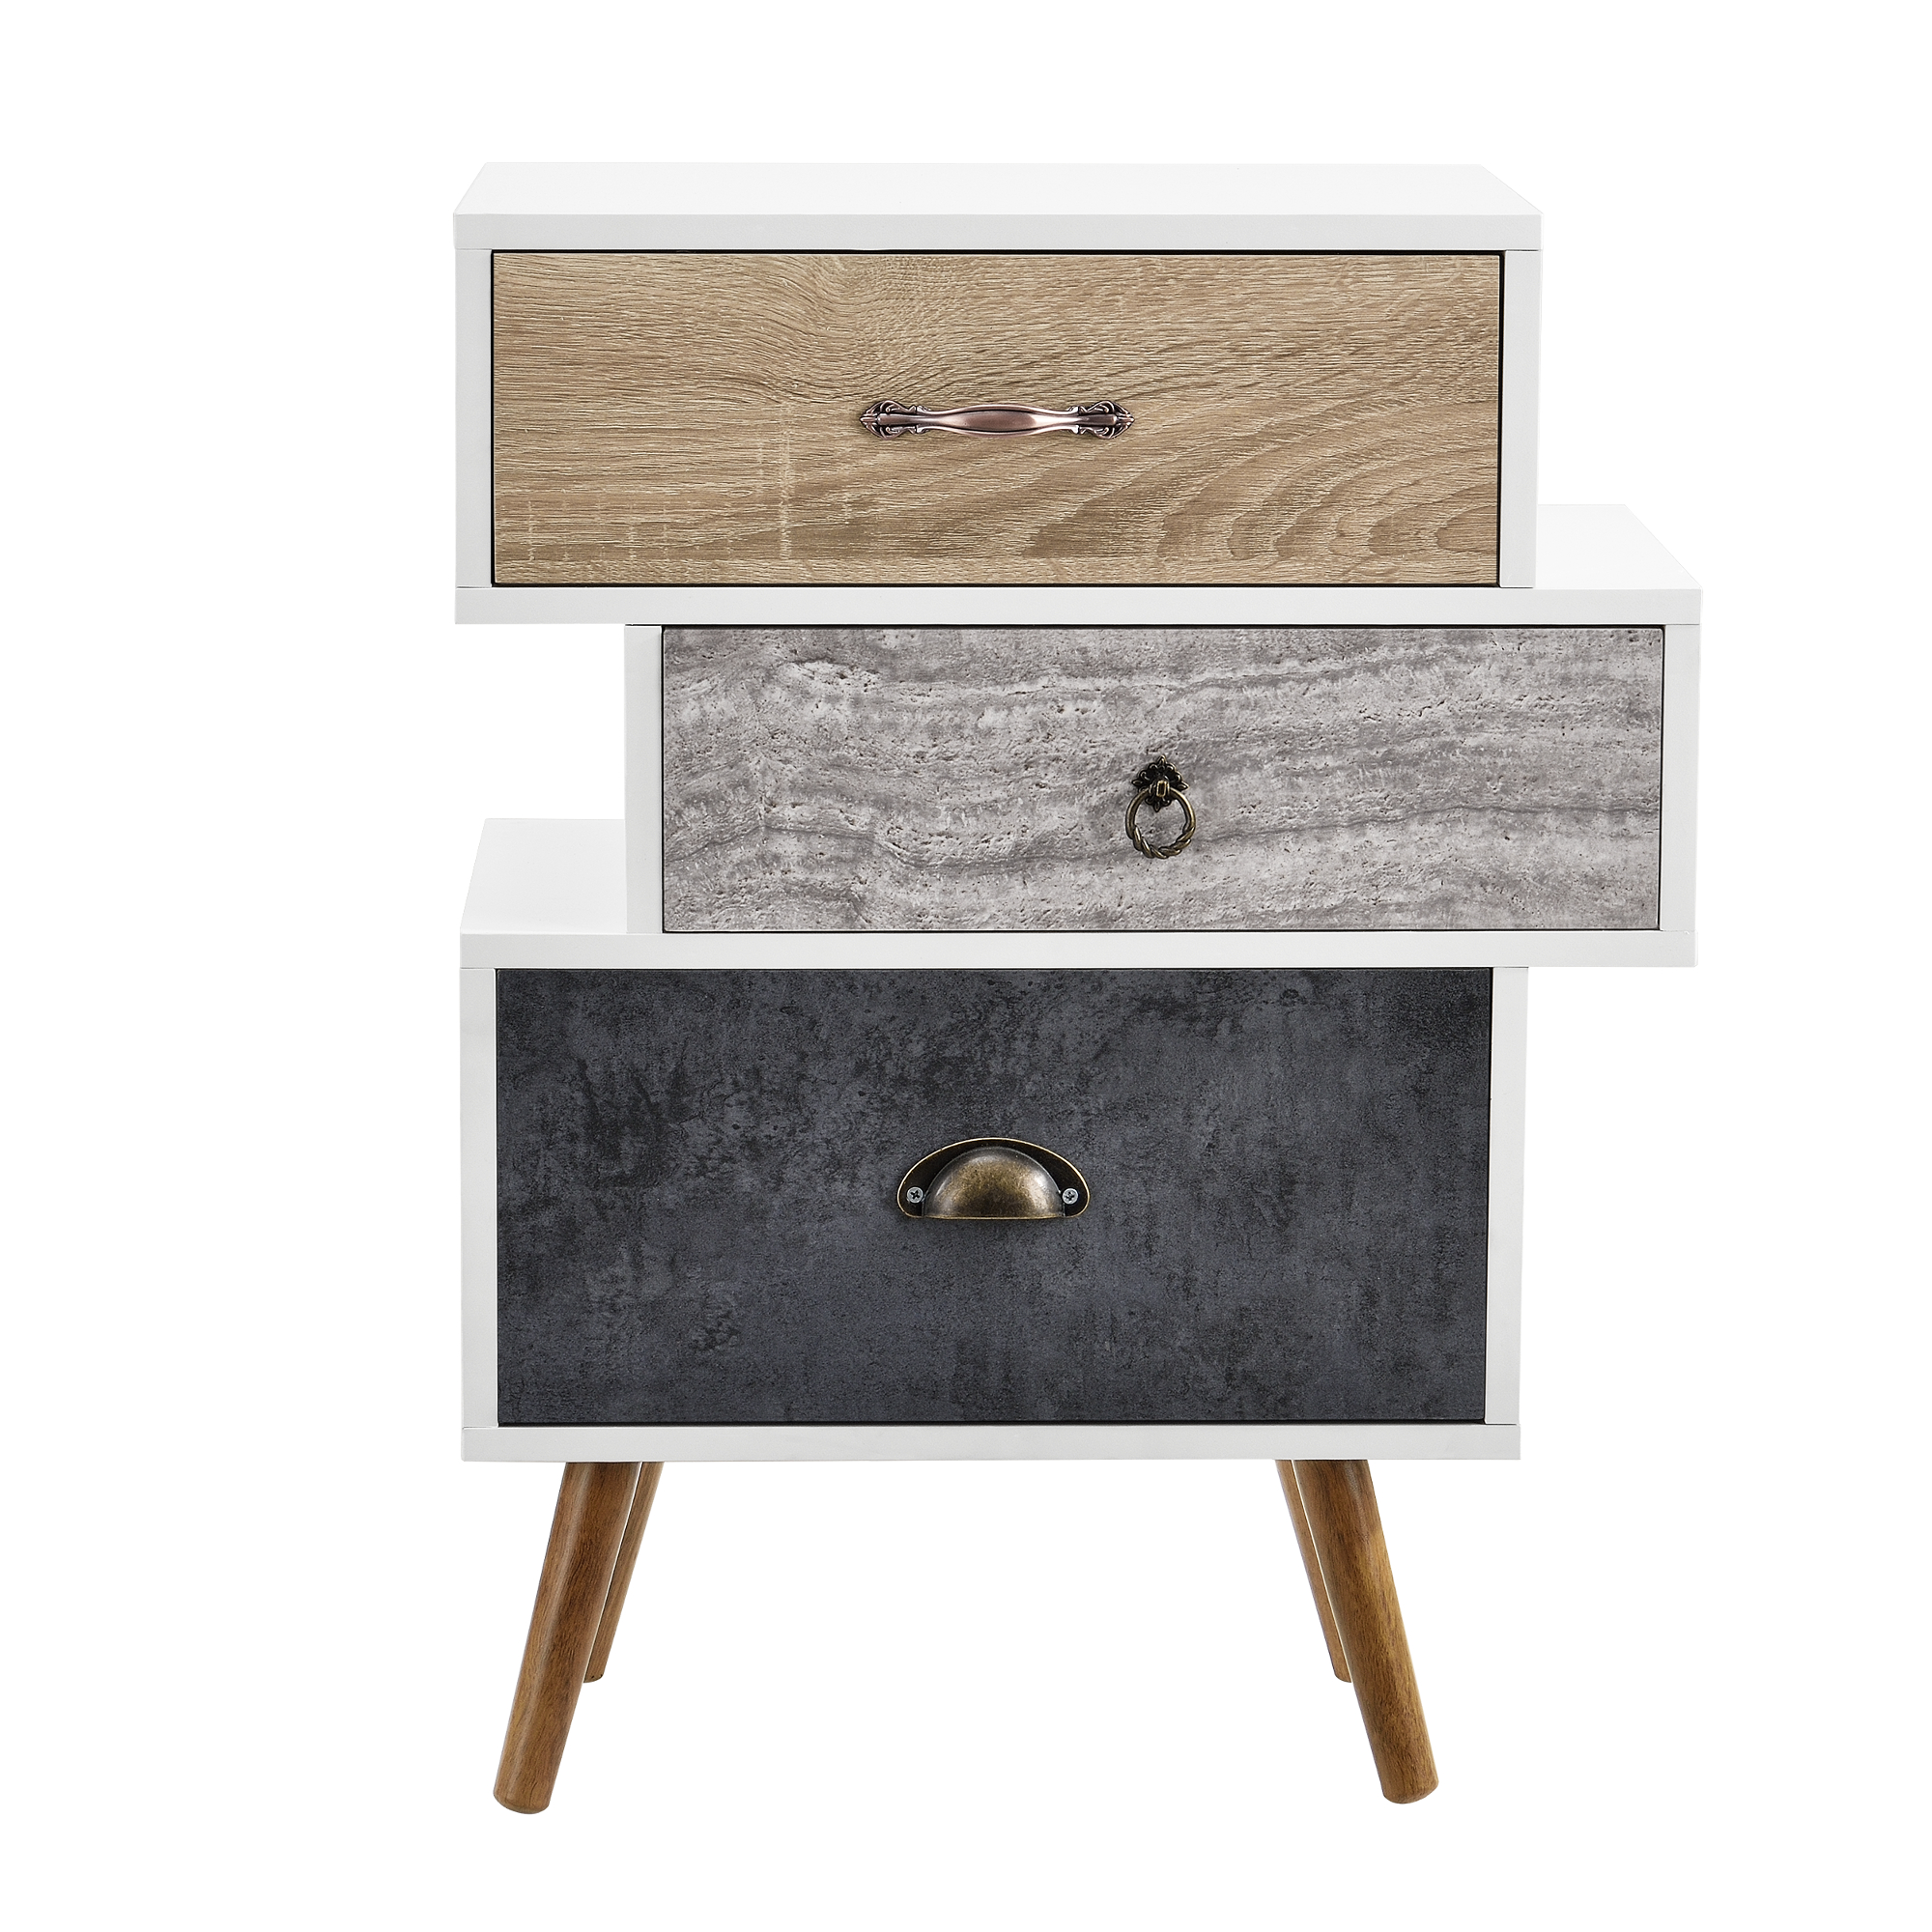 highboard kommode sideboard schrank wei grau eiche beistelltisch ebay. Black Bedroom Furniture Sets. Home Design Ideas